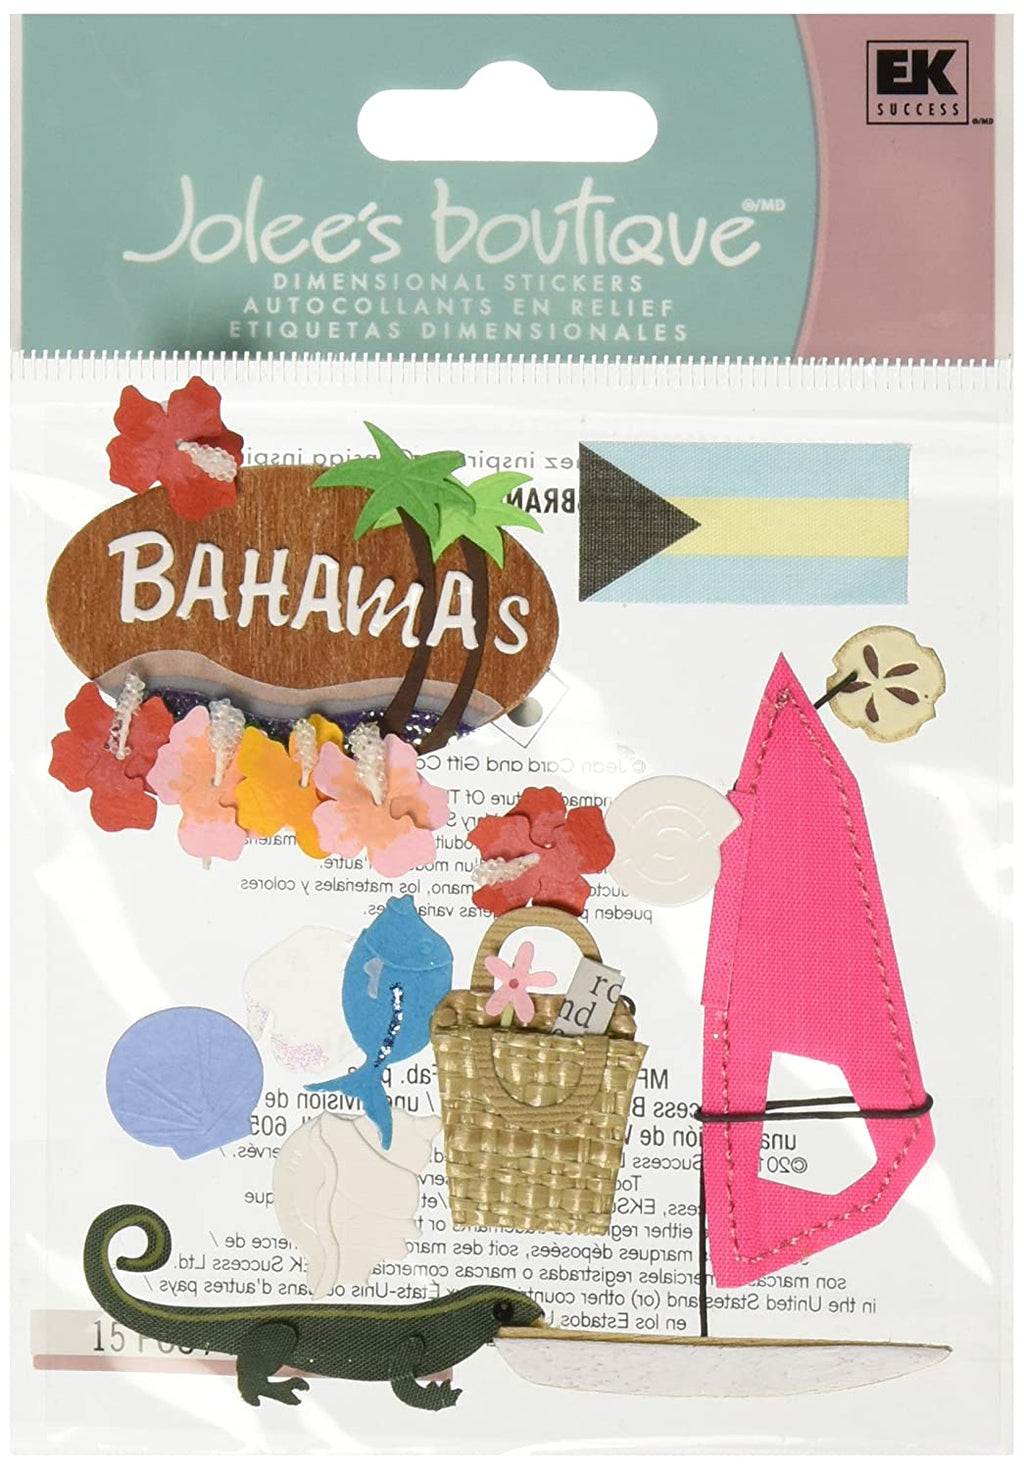 Jolee's Boutique Bahamas Dimensional Stickers